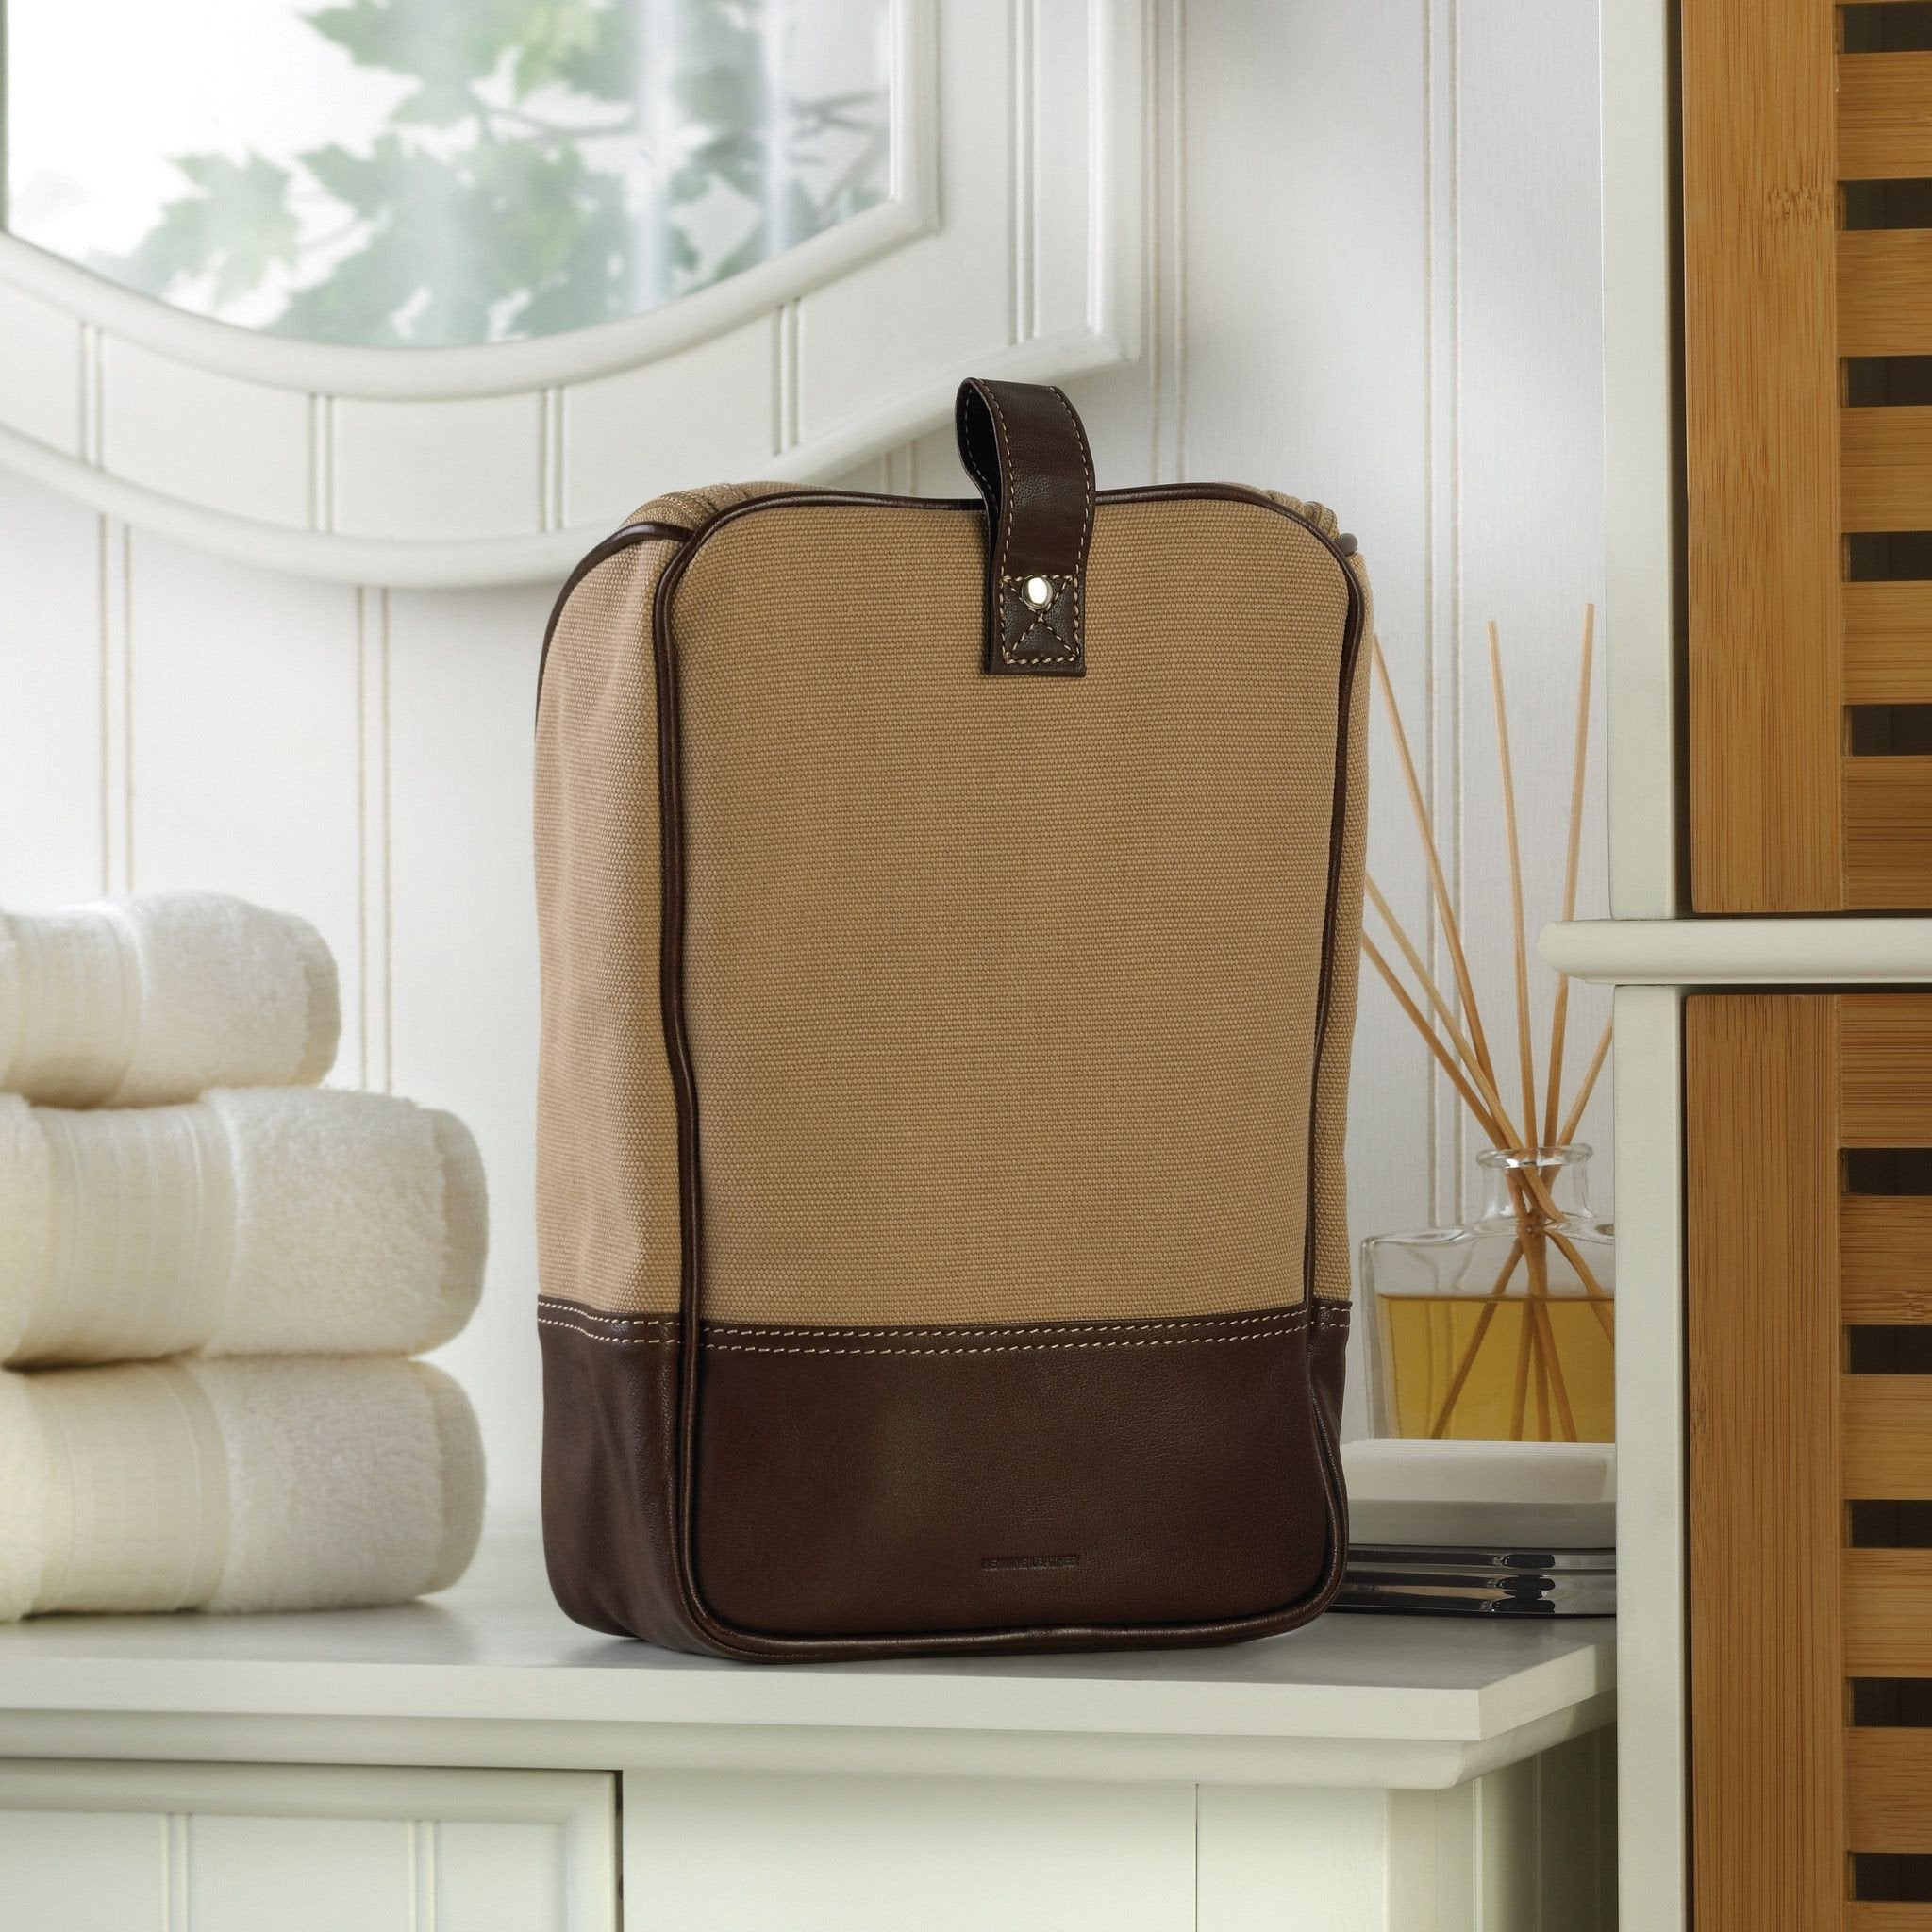 7ff639d2ee Personalized Travel Bag - Leather - Canvas - Travel Kit - Monogrammed